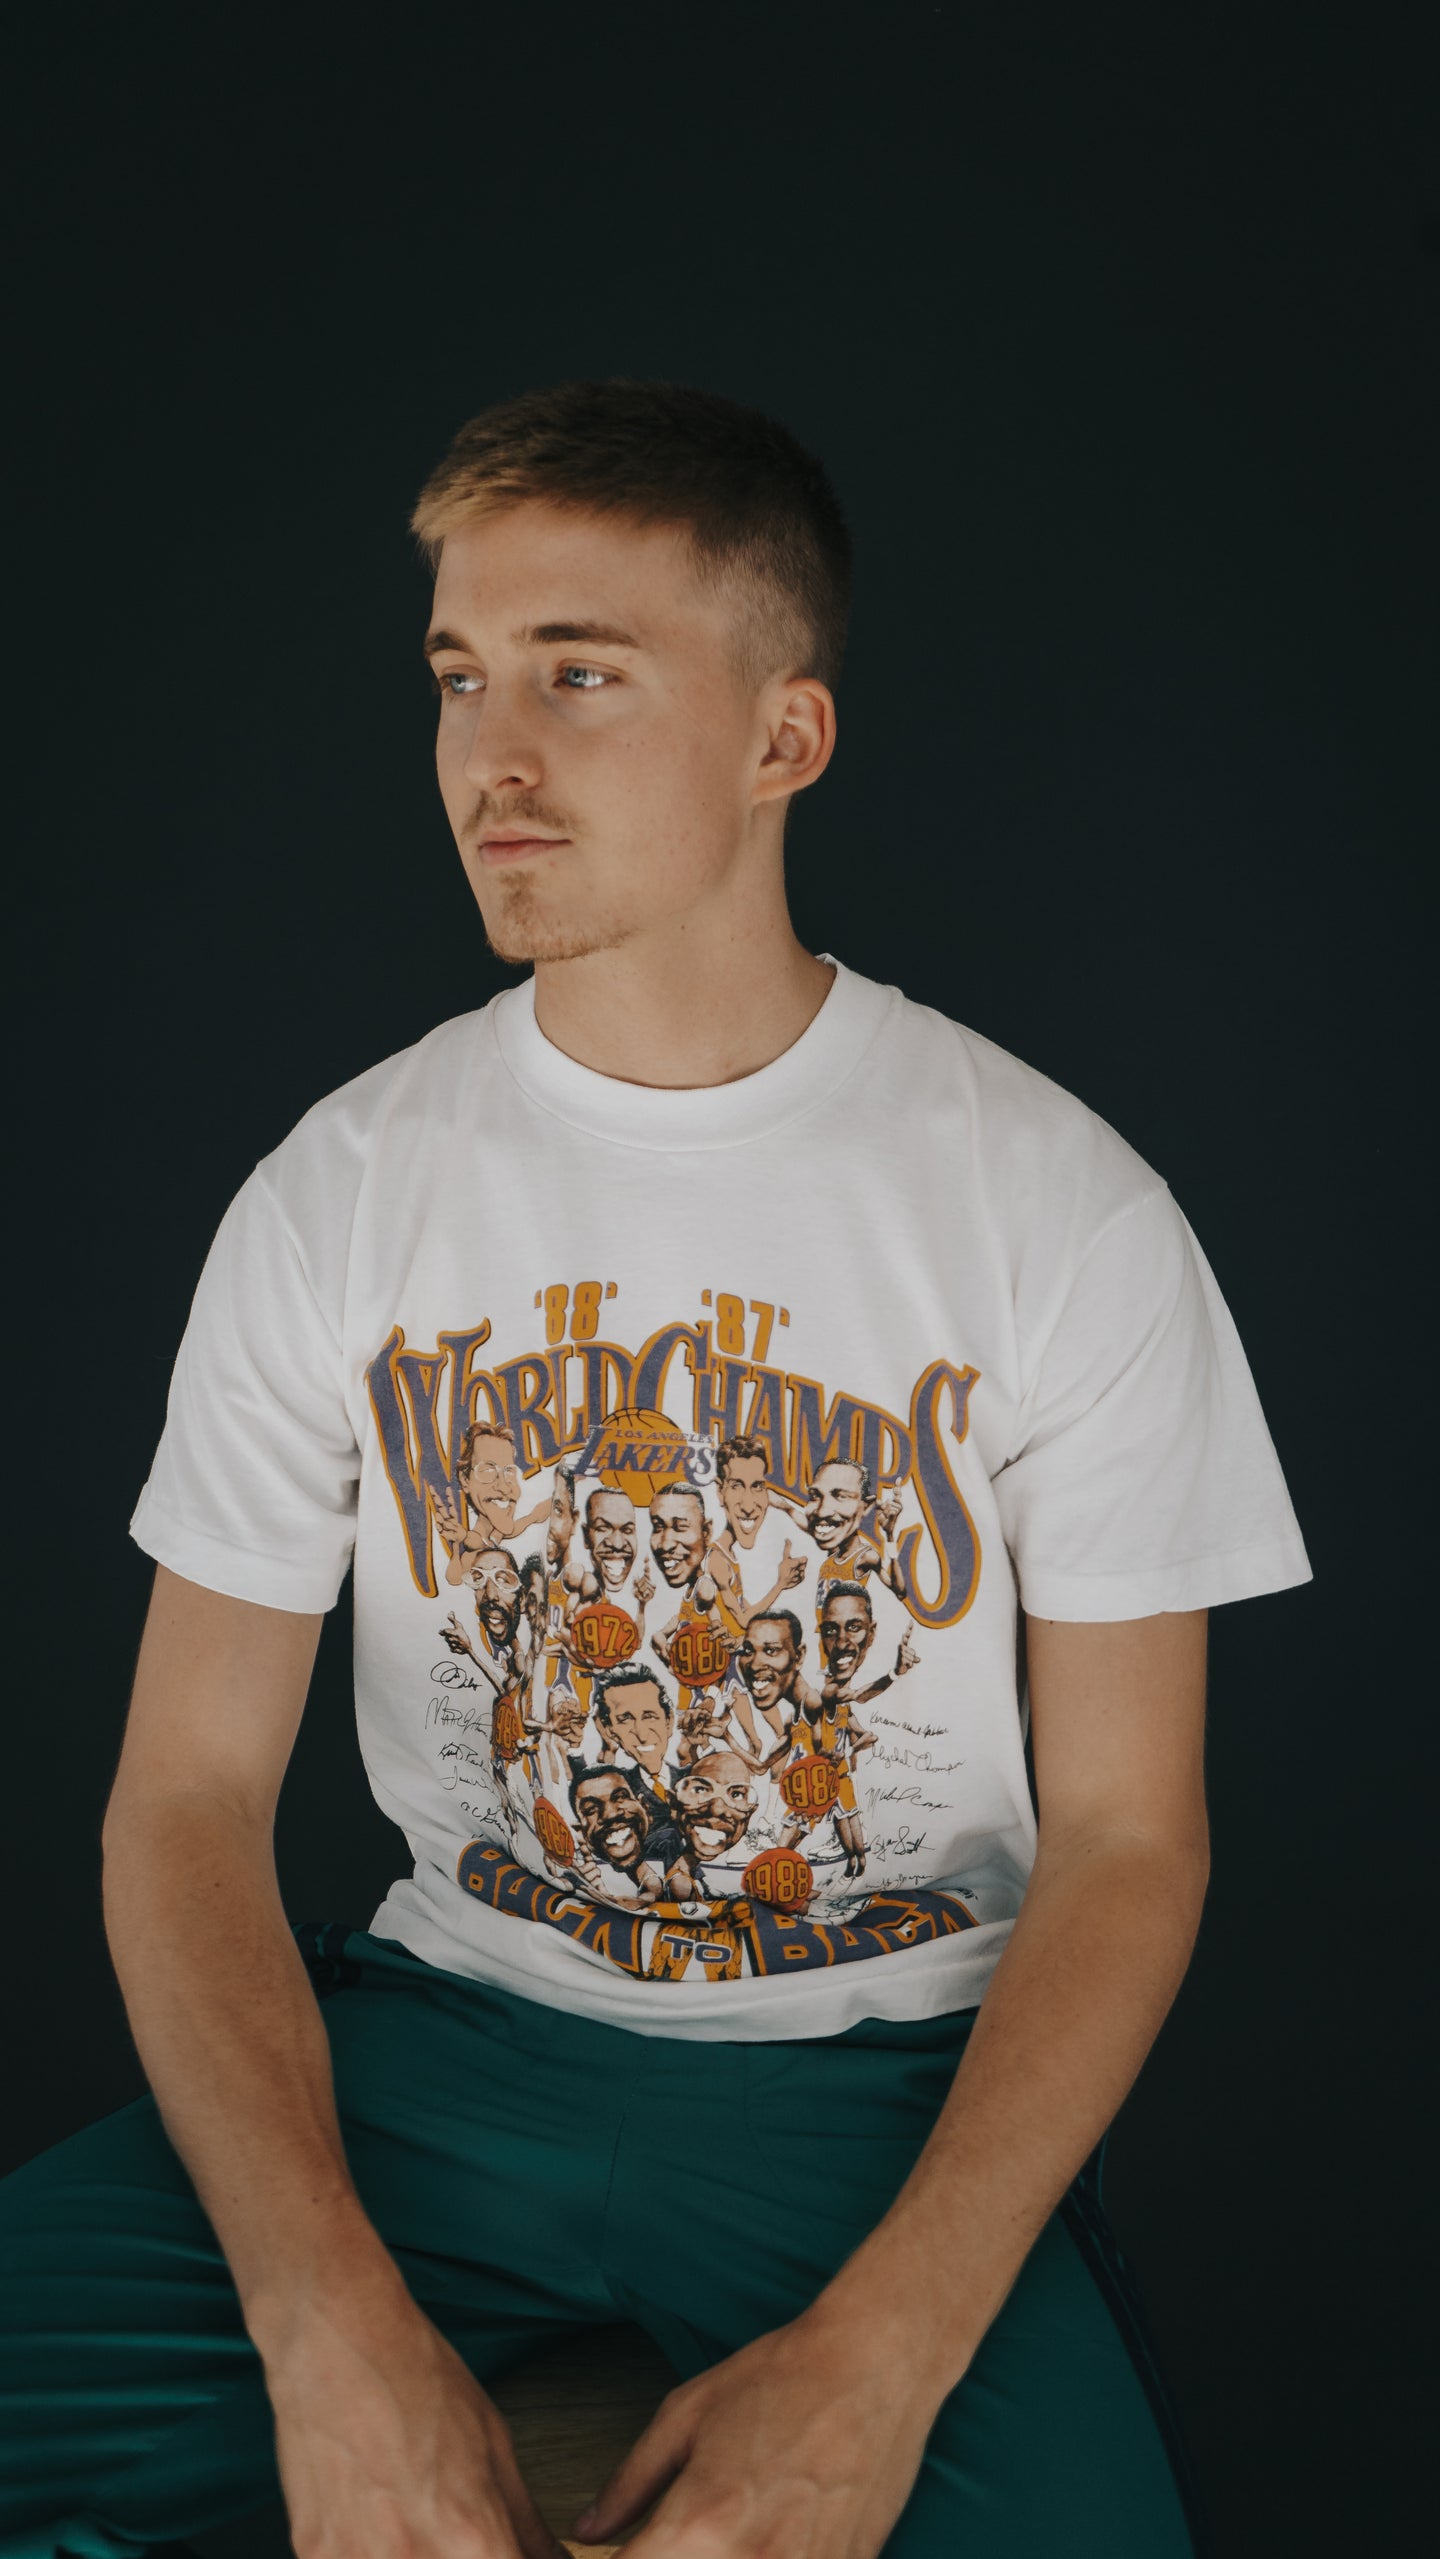 1987 Lakers champions tee